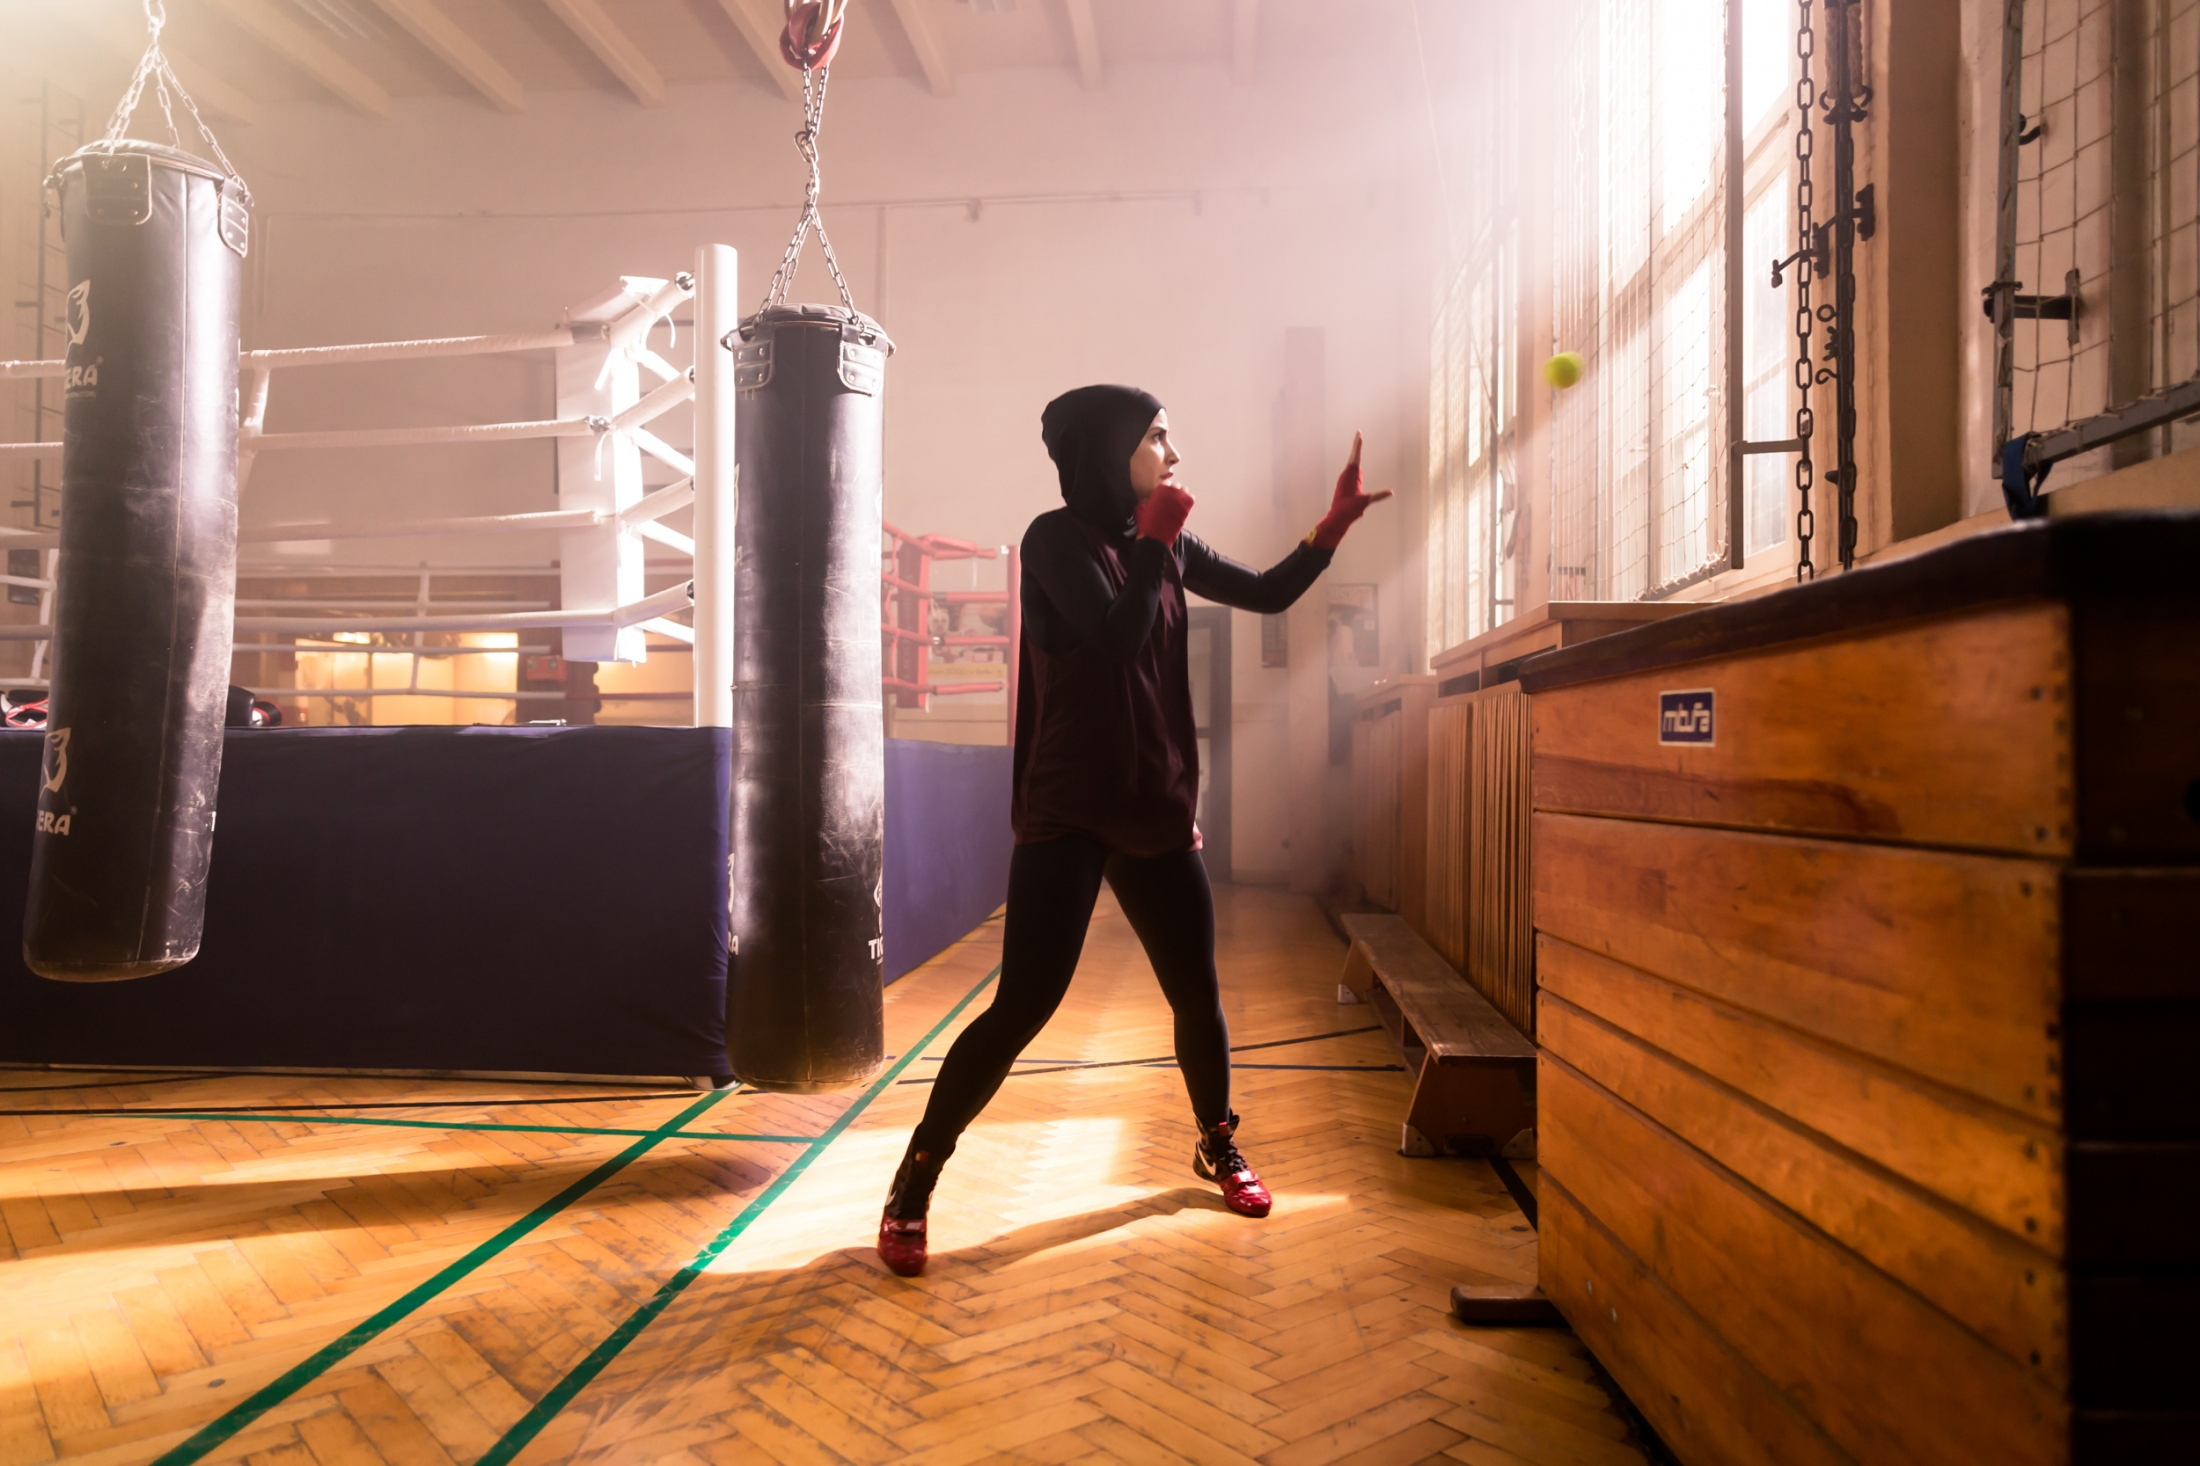 German featherweight boxing champion Zeina Nassar, 21, warms up at her first boxing gym in Berlin Kreuzberg. Berlin, Germany, November 23, 2018.